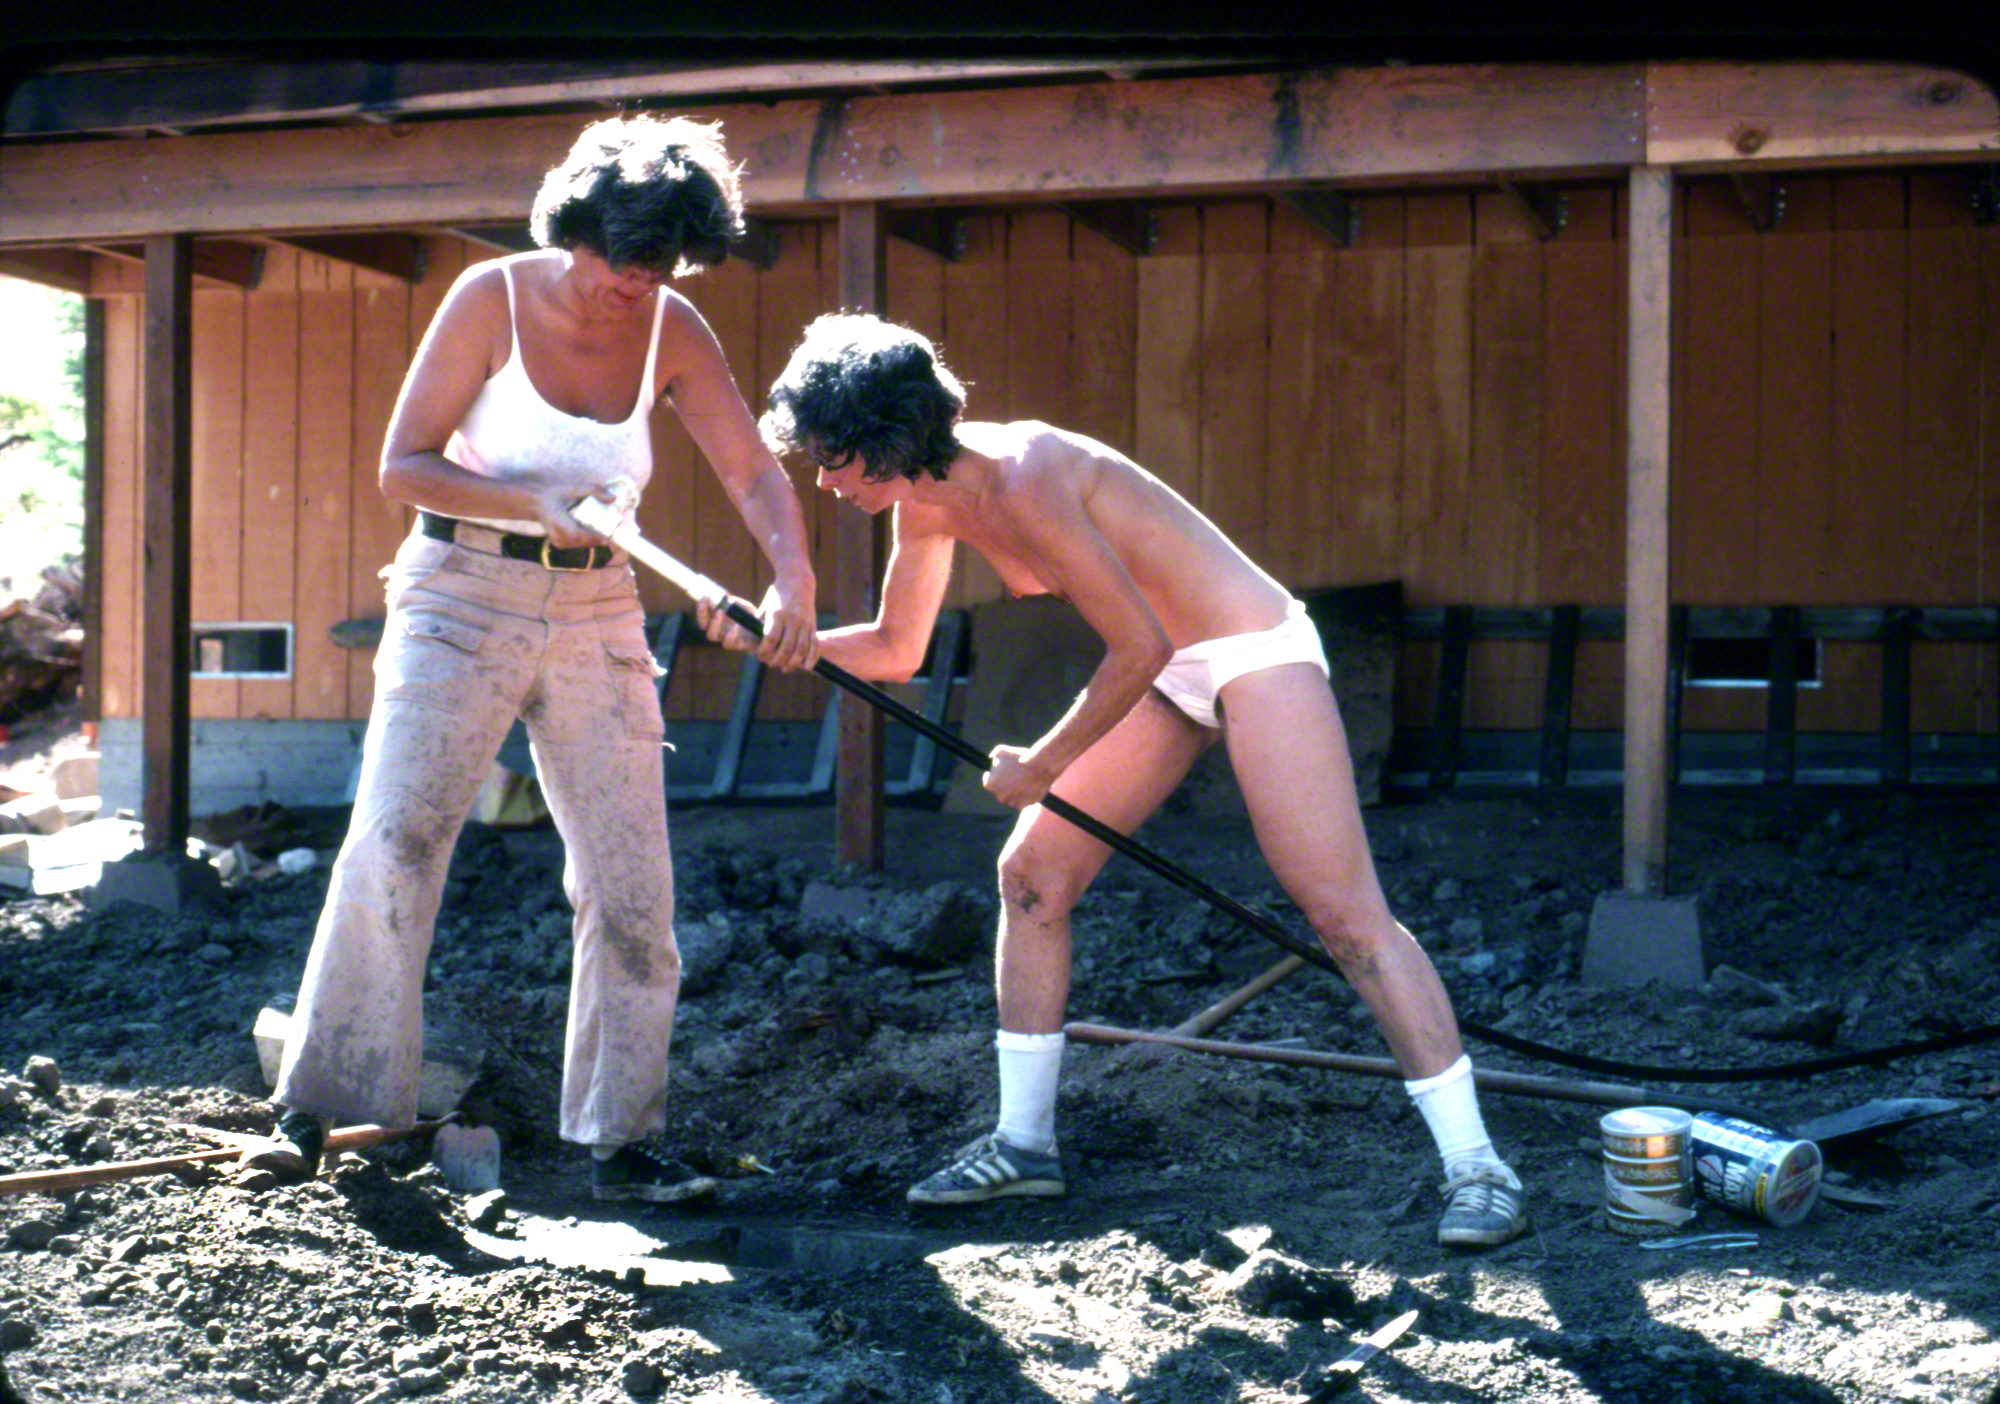 Sally Gearhart and Jane Gurko, 1977, Willits, CA